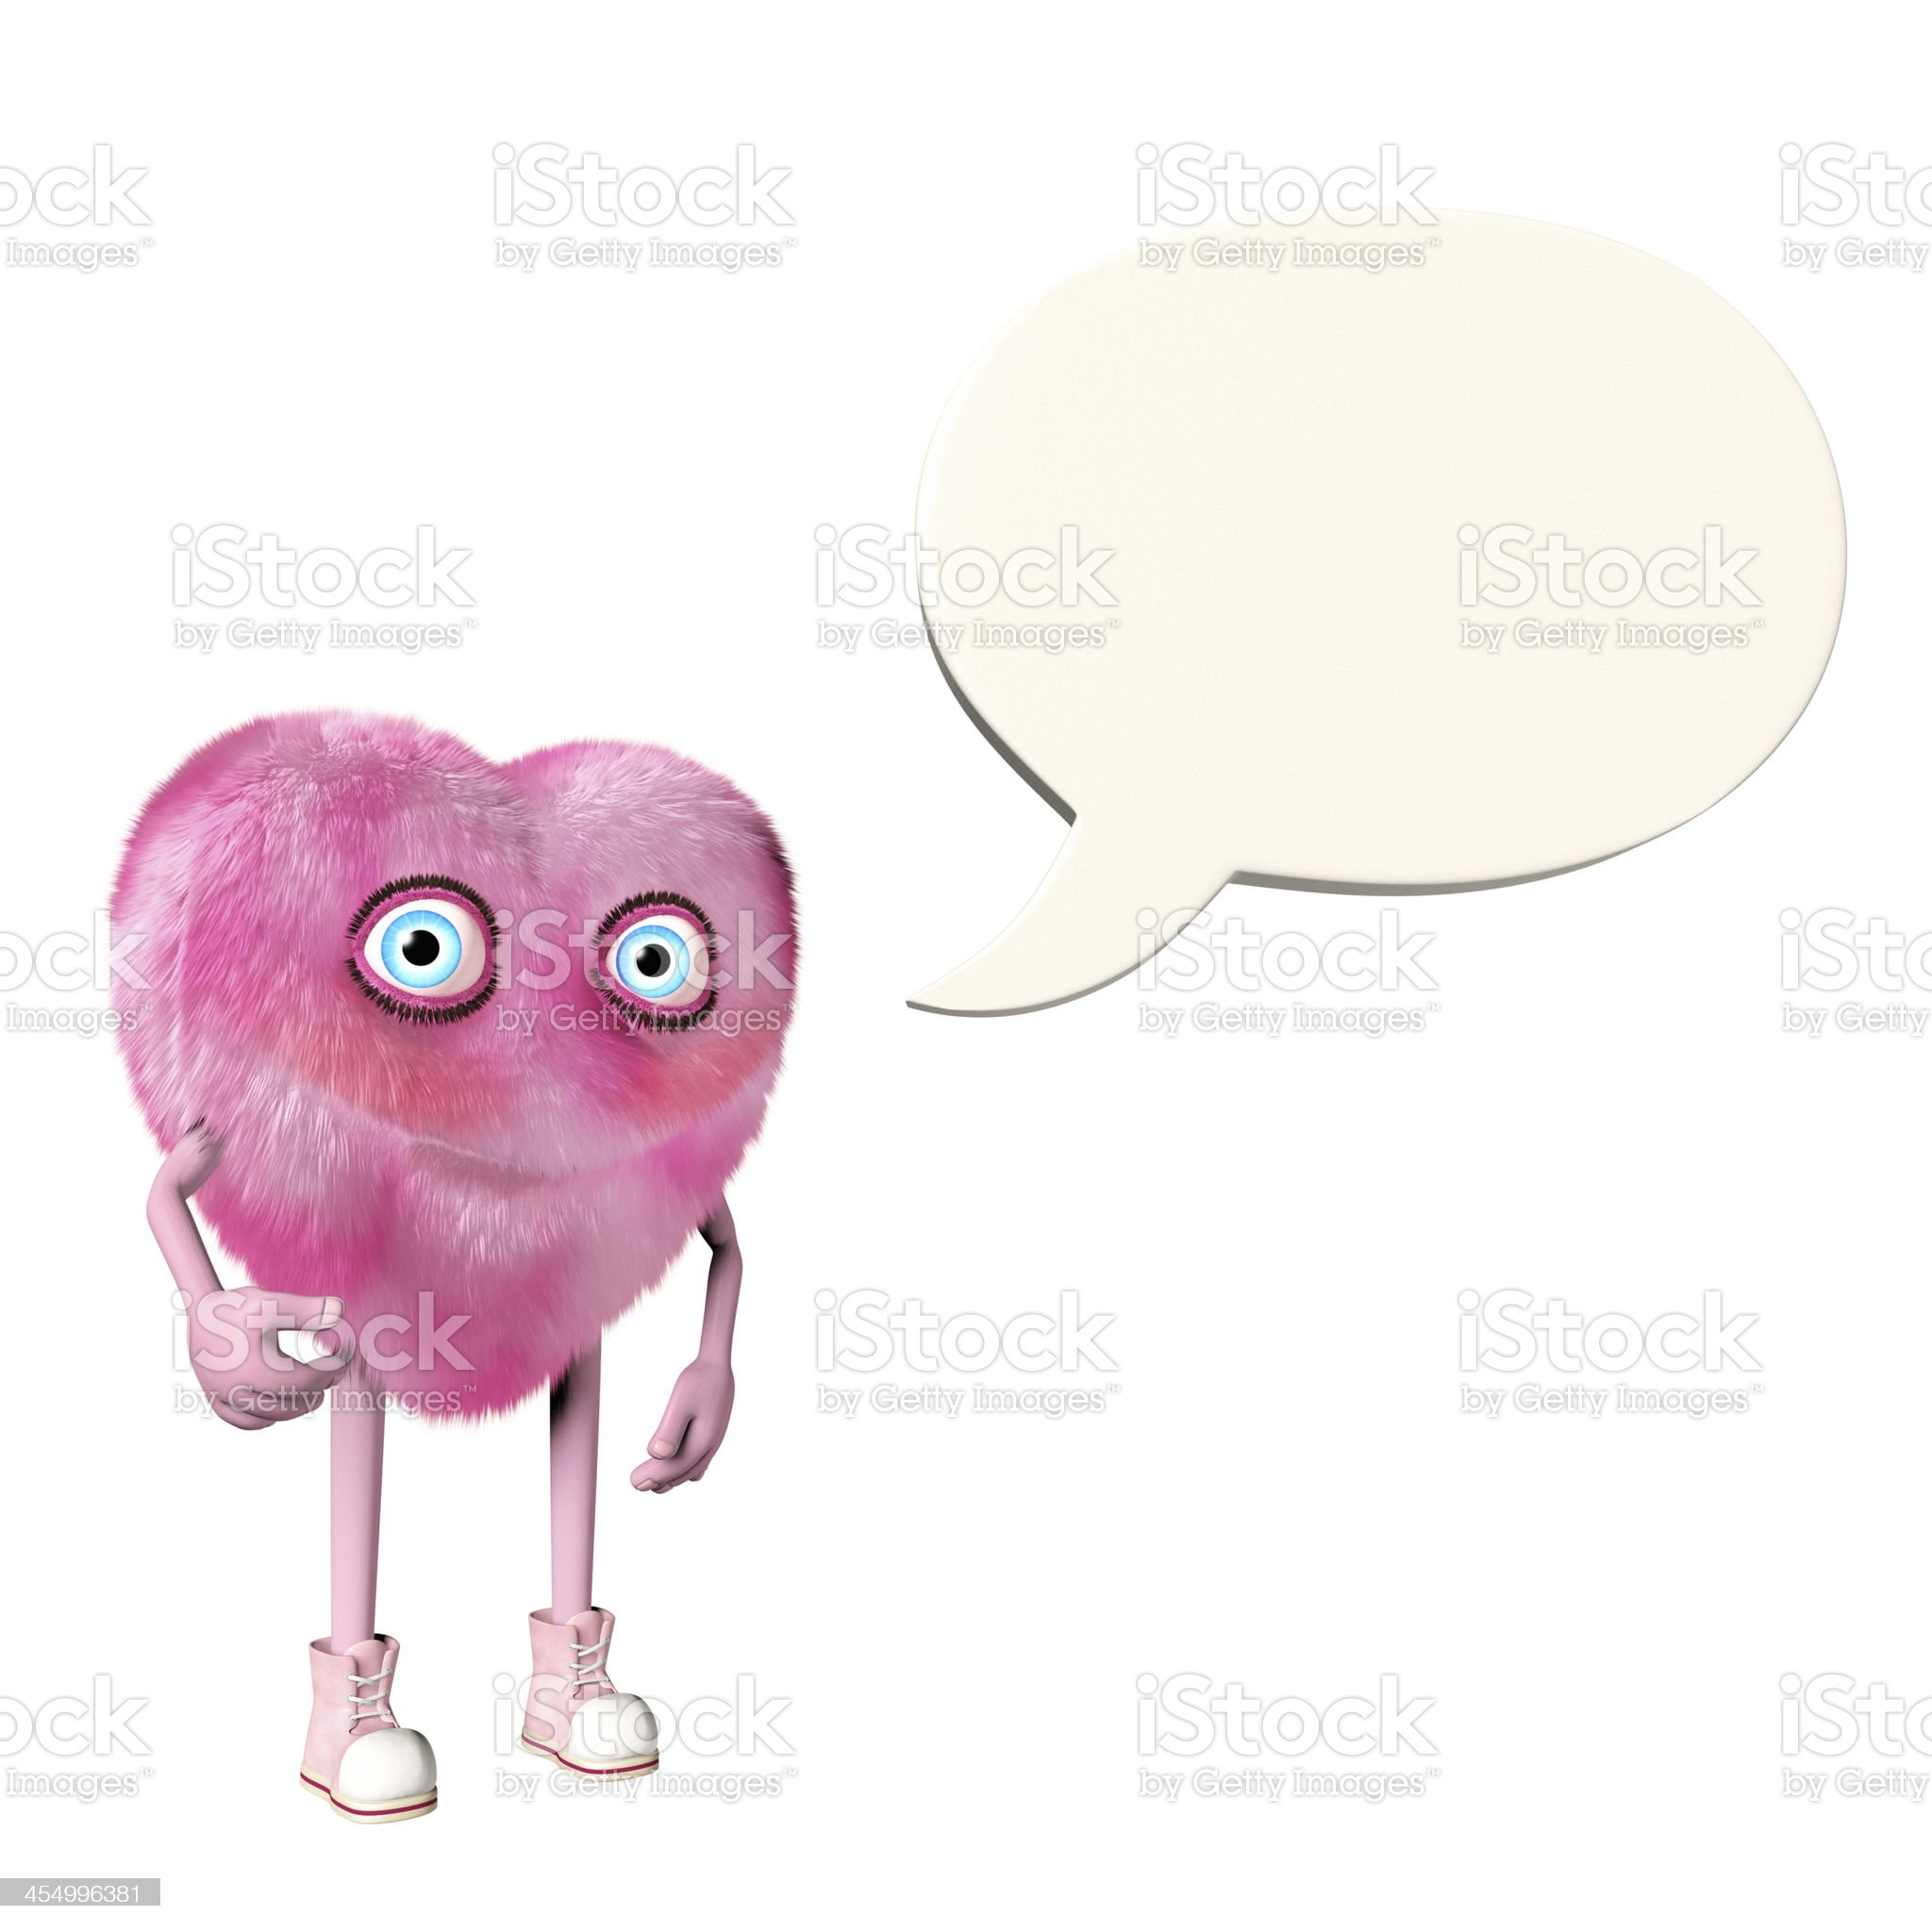 Pink heart shaped character with an empty speech bubble royalty-free stock photo